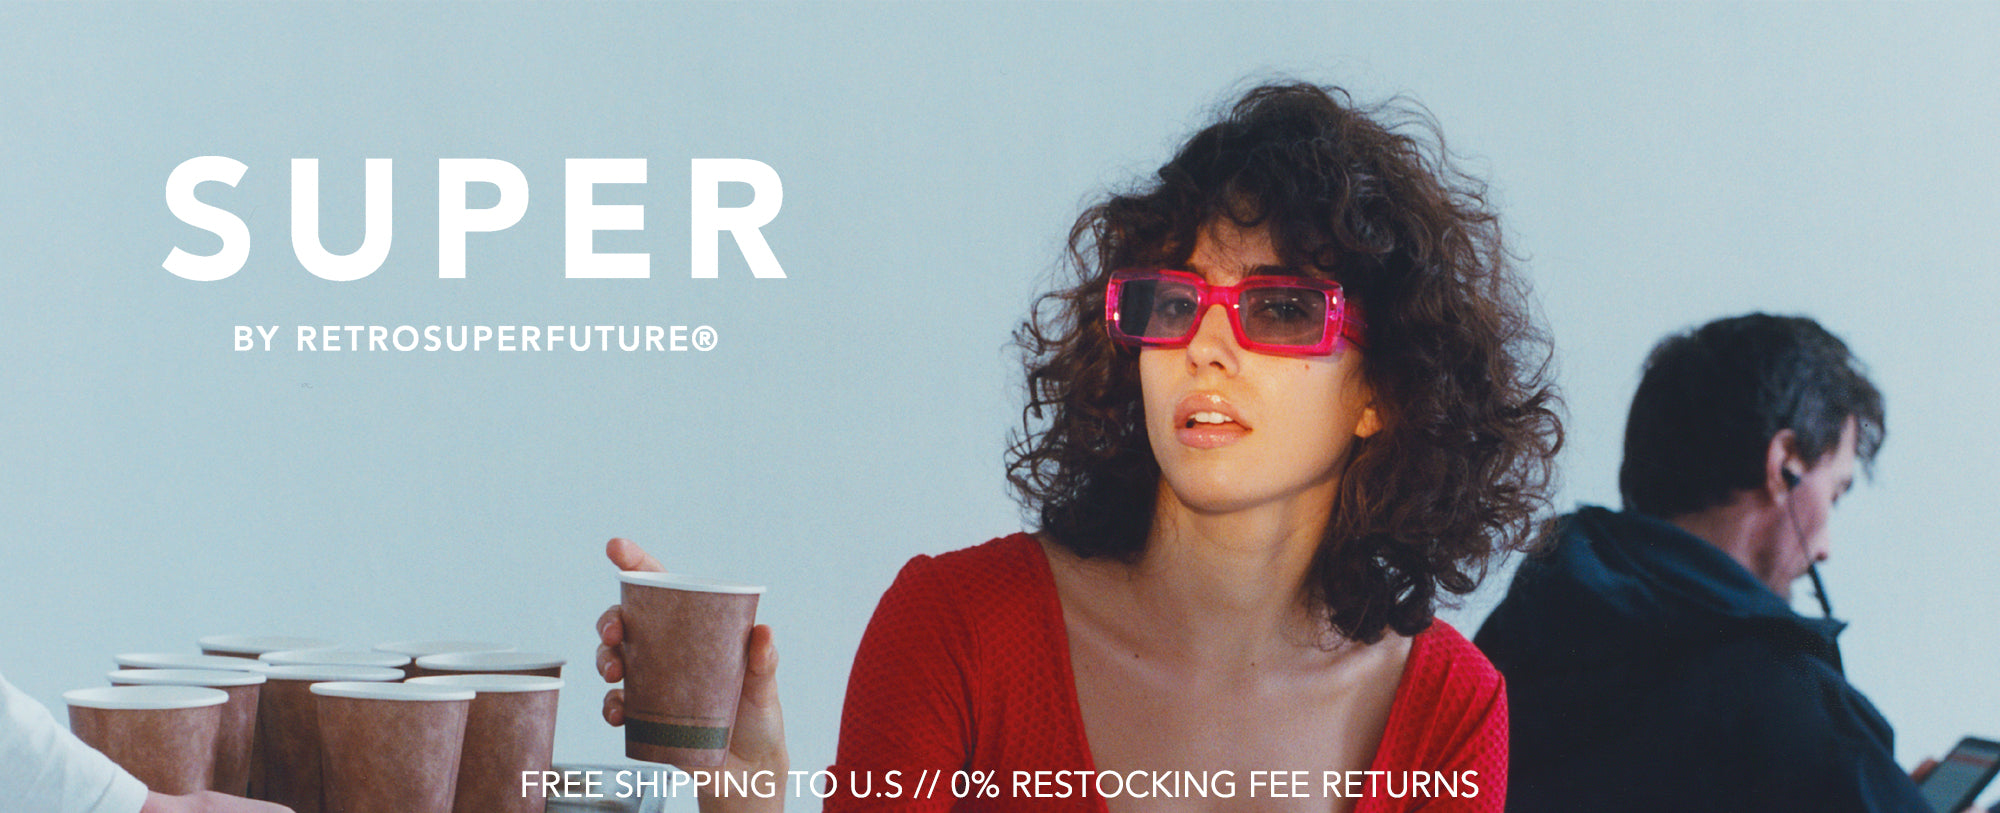 Super by Retro Super Future | Sunglasses